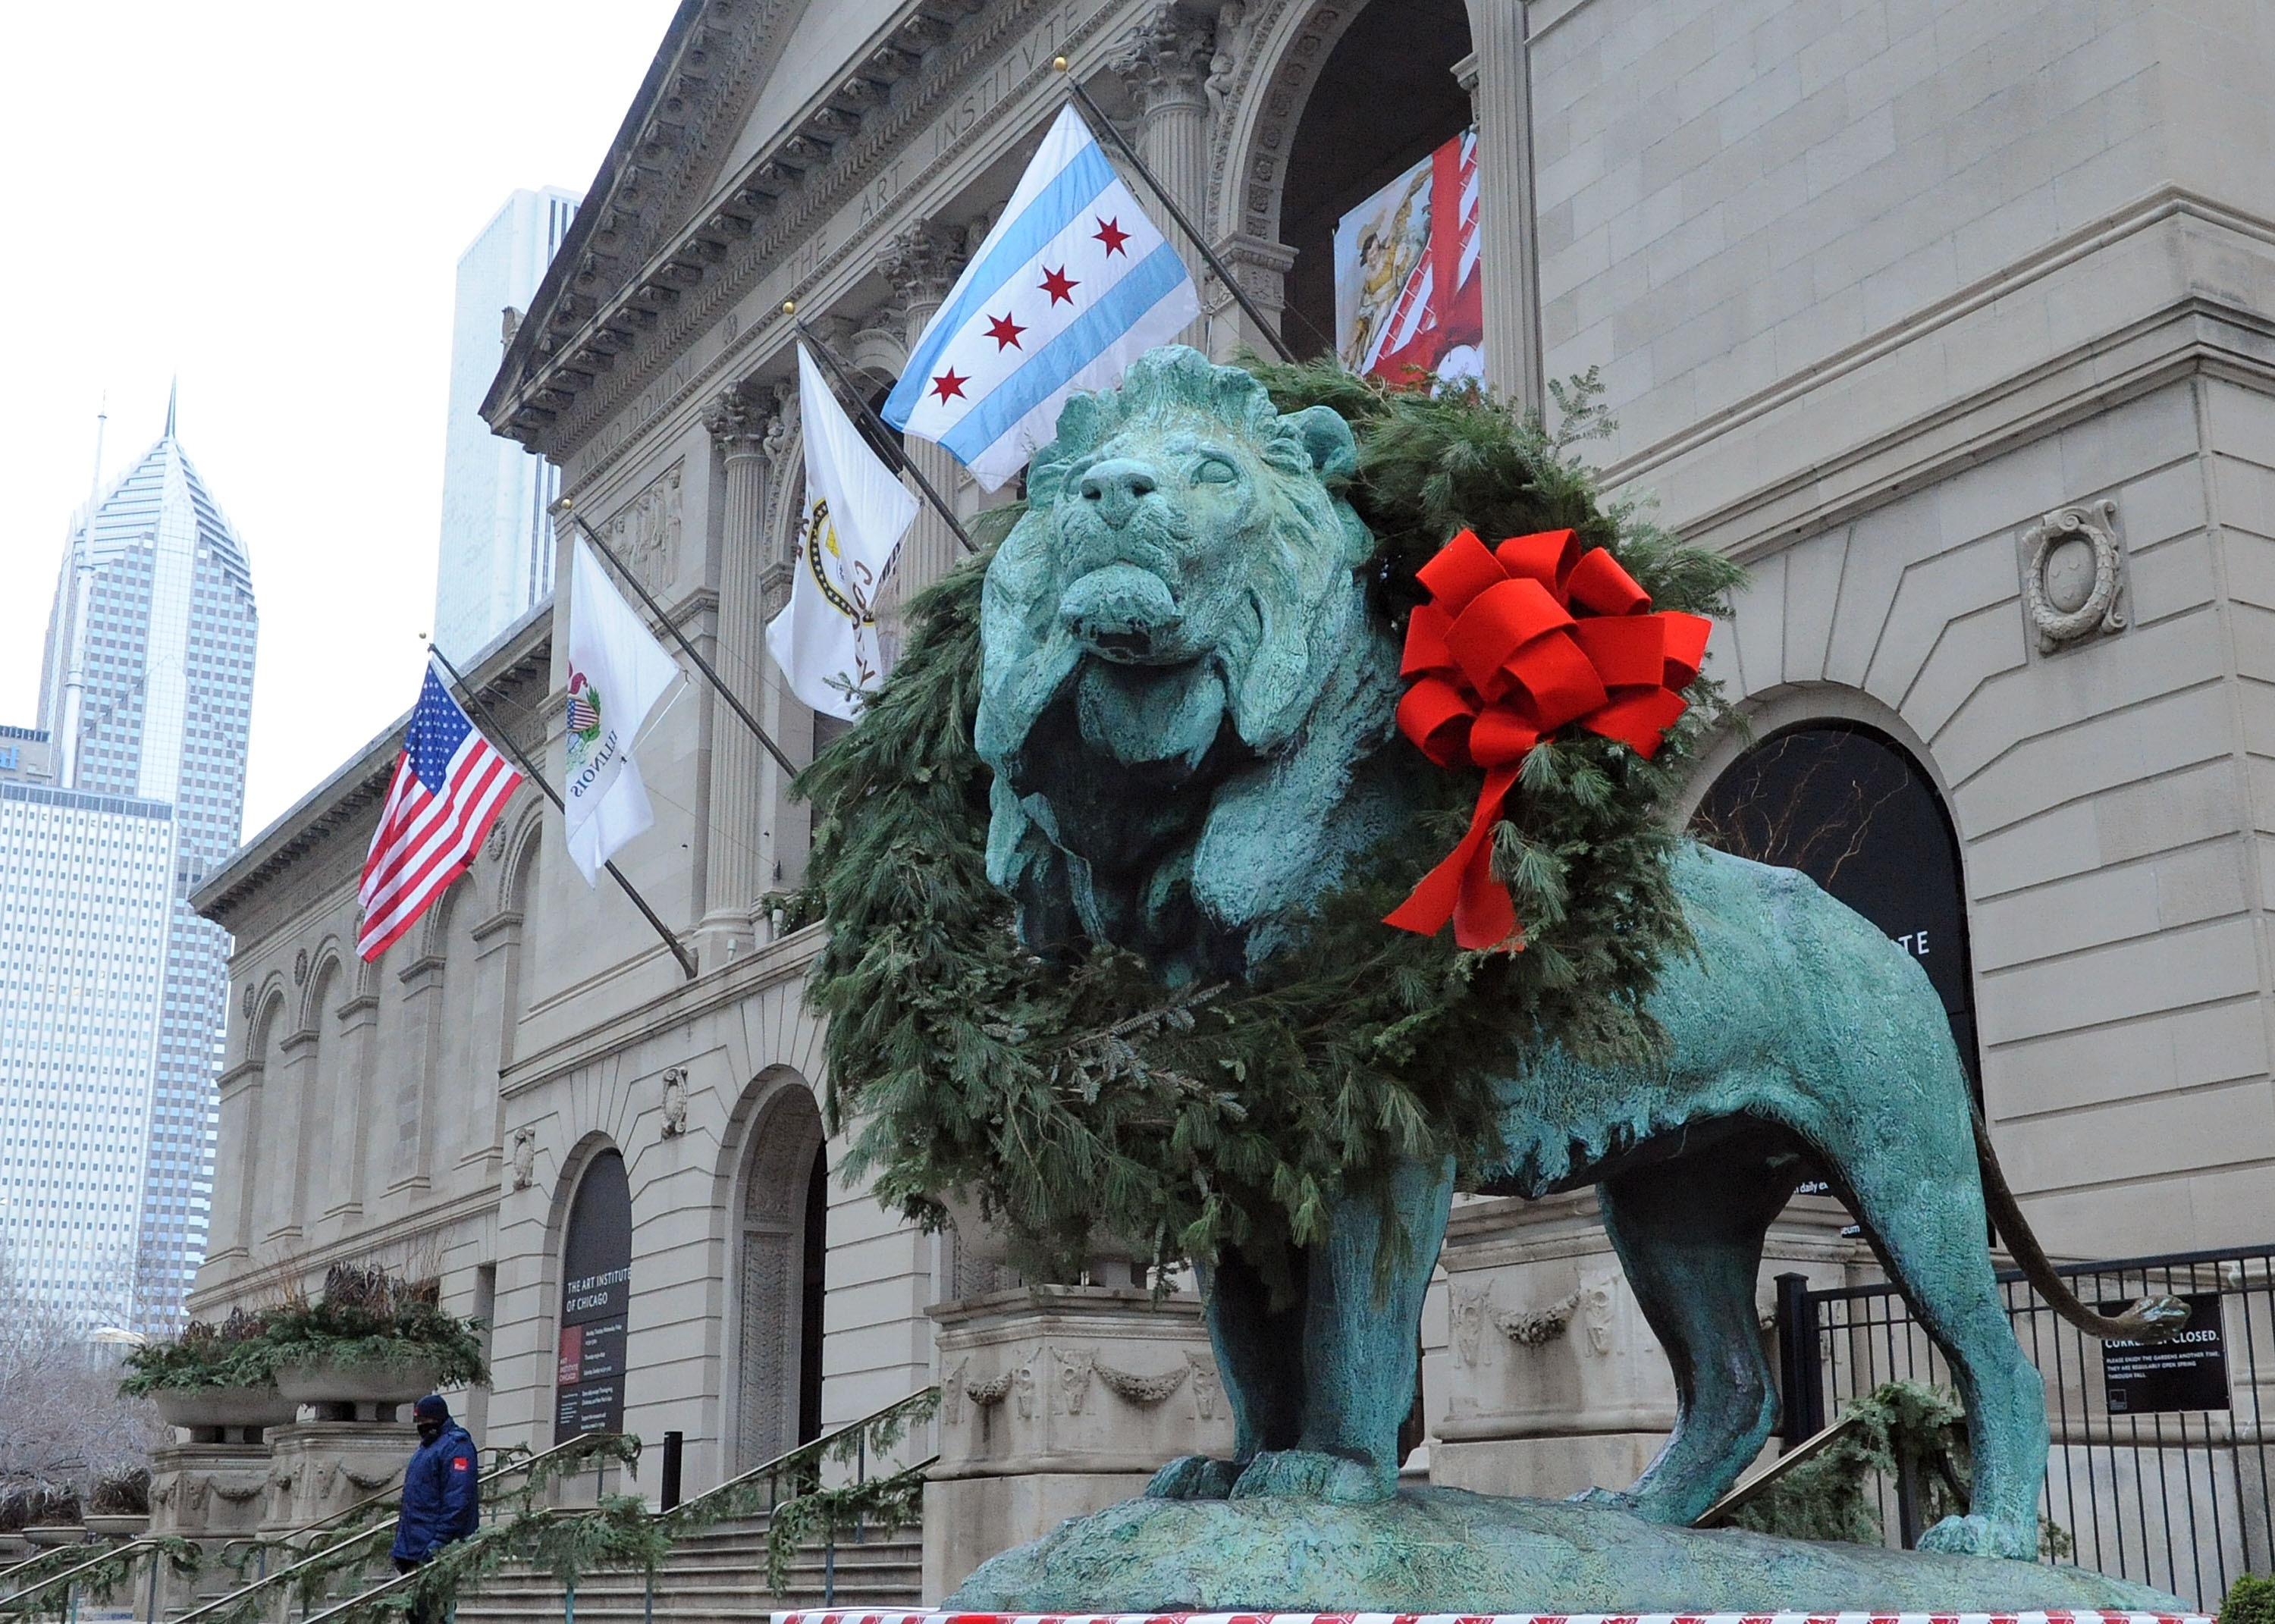 Patina lions at the Art Institute's front entrance with giant evergreen wreaths and red bows.